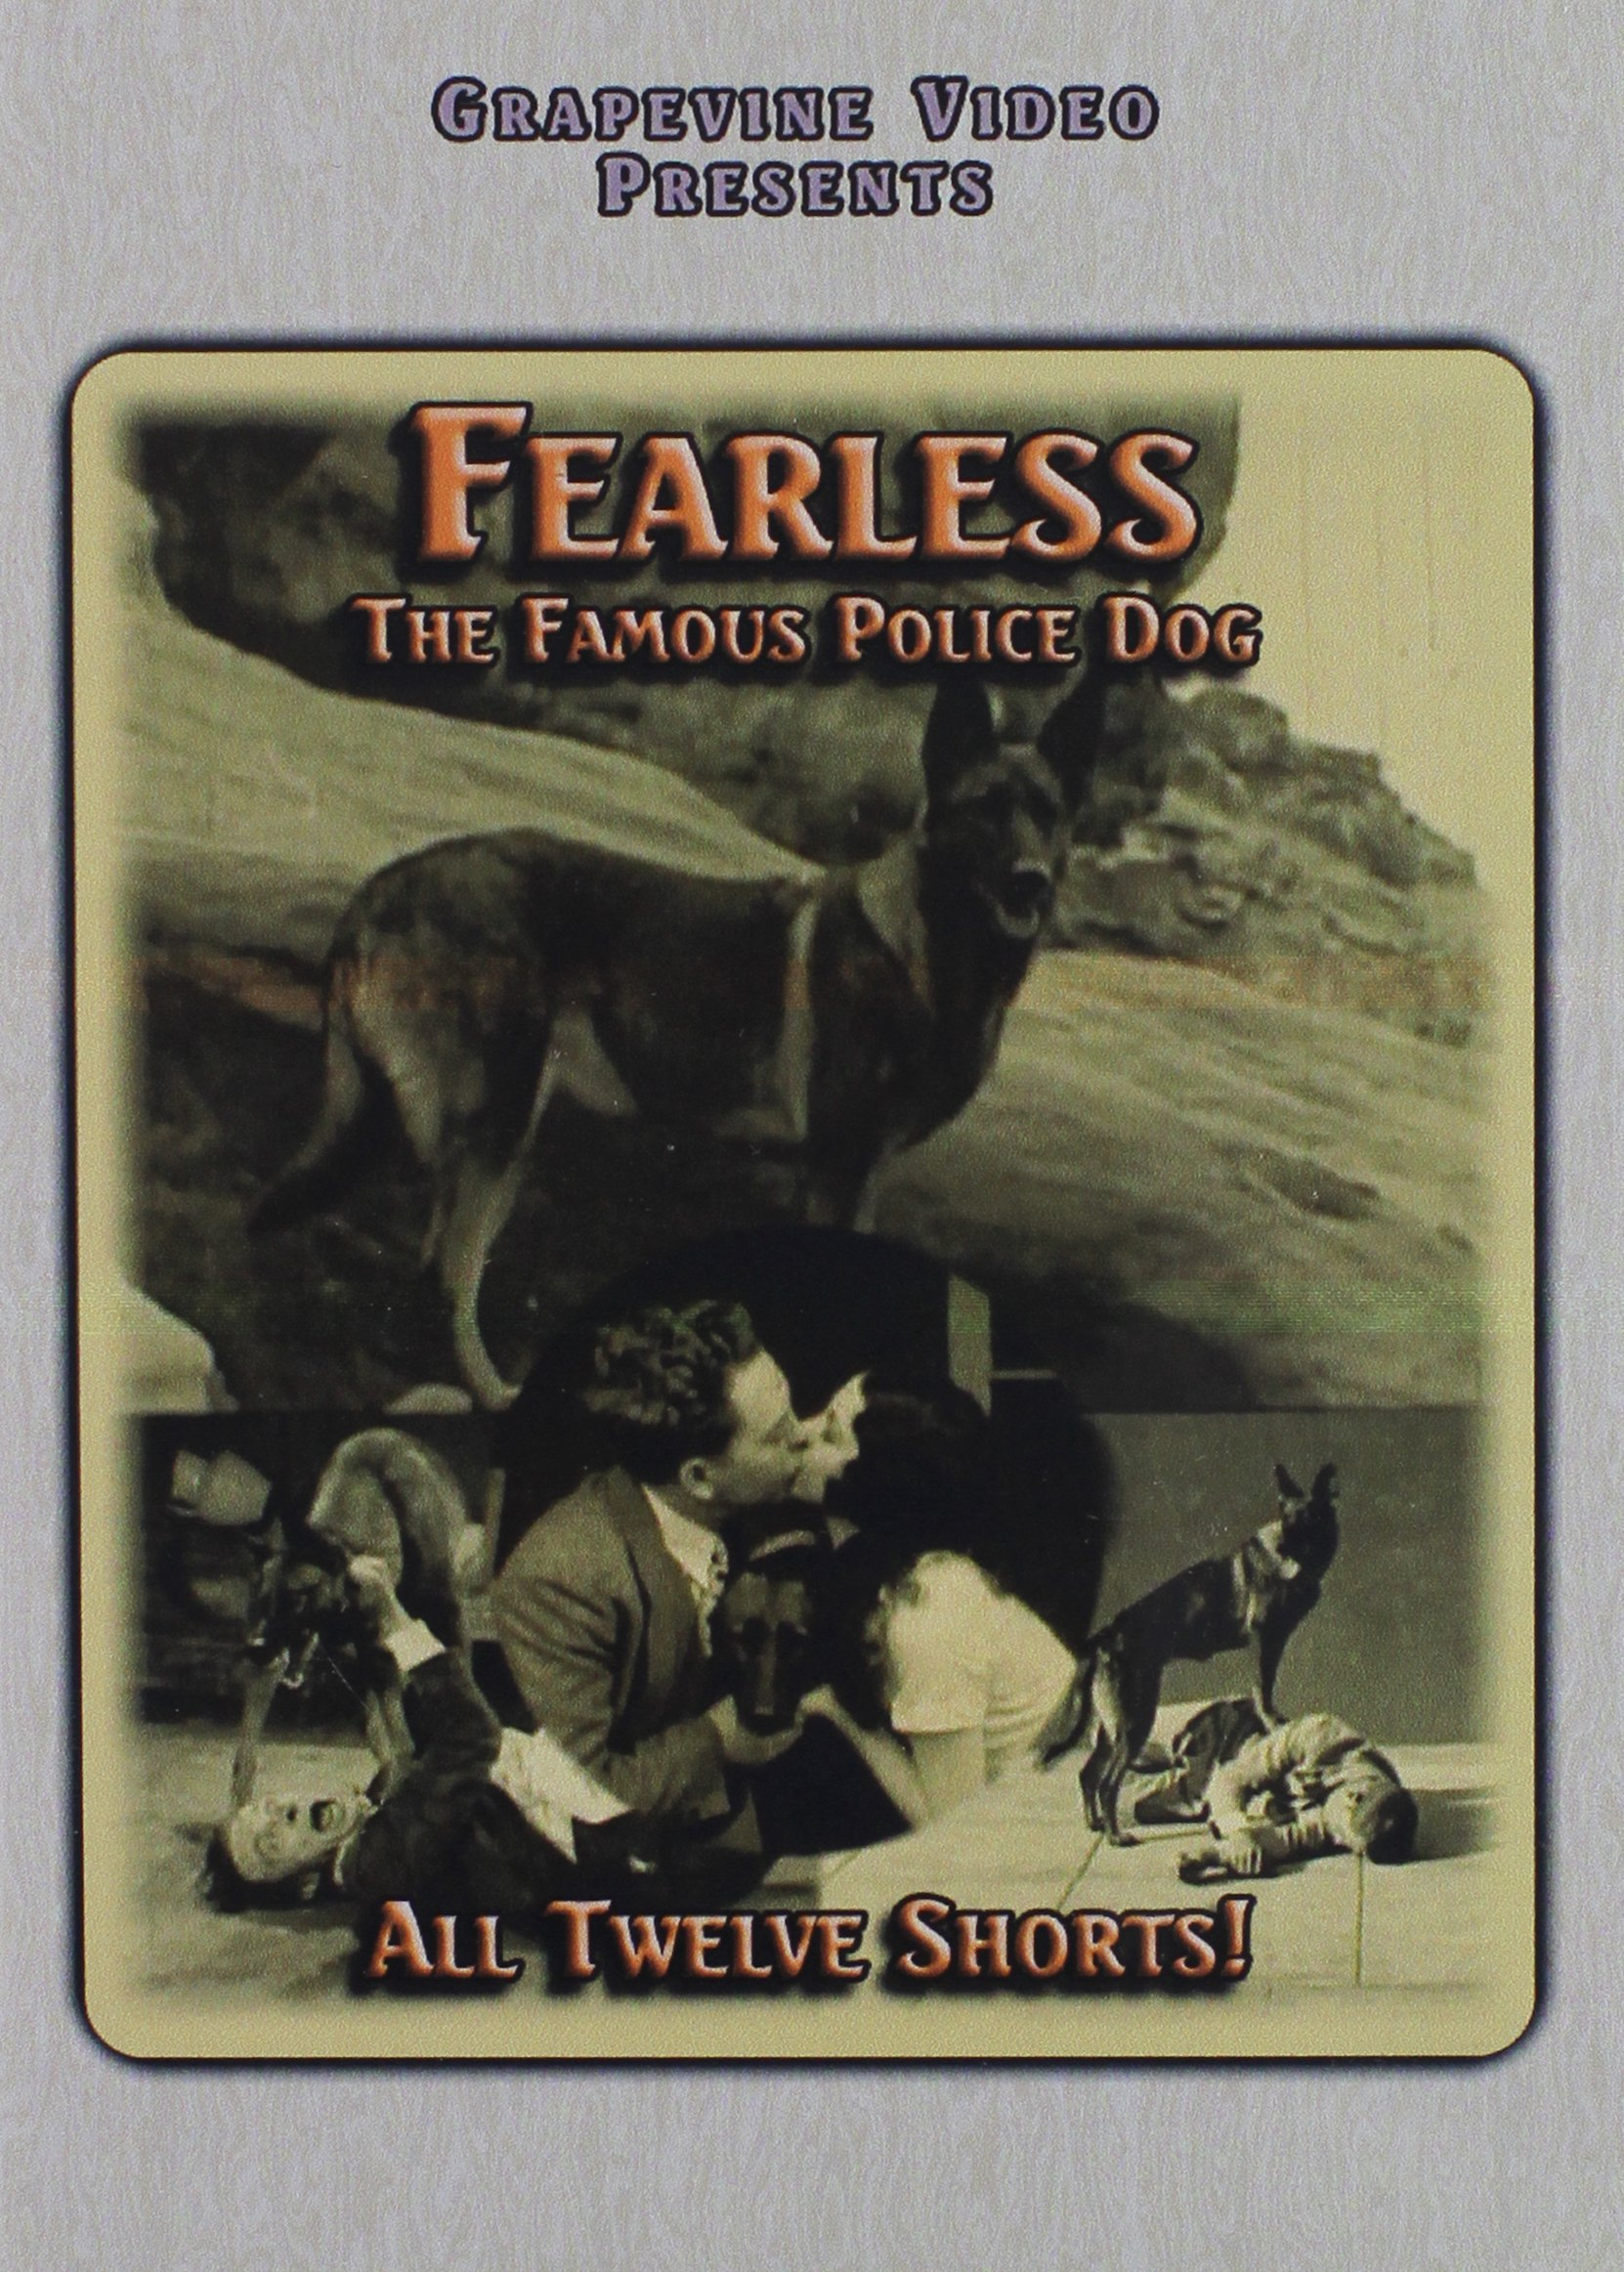 DVD : Fearless The Police Dog (1926-1927) (Silent Movie)